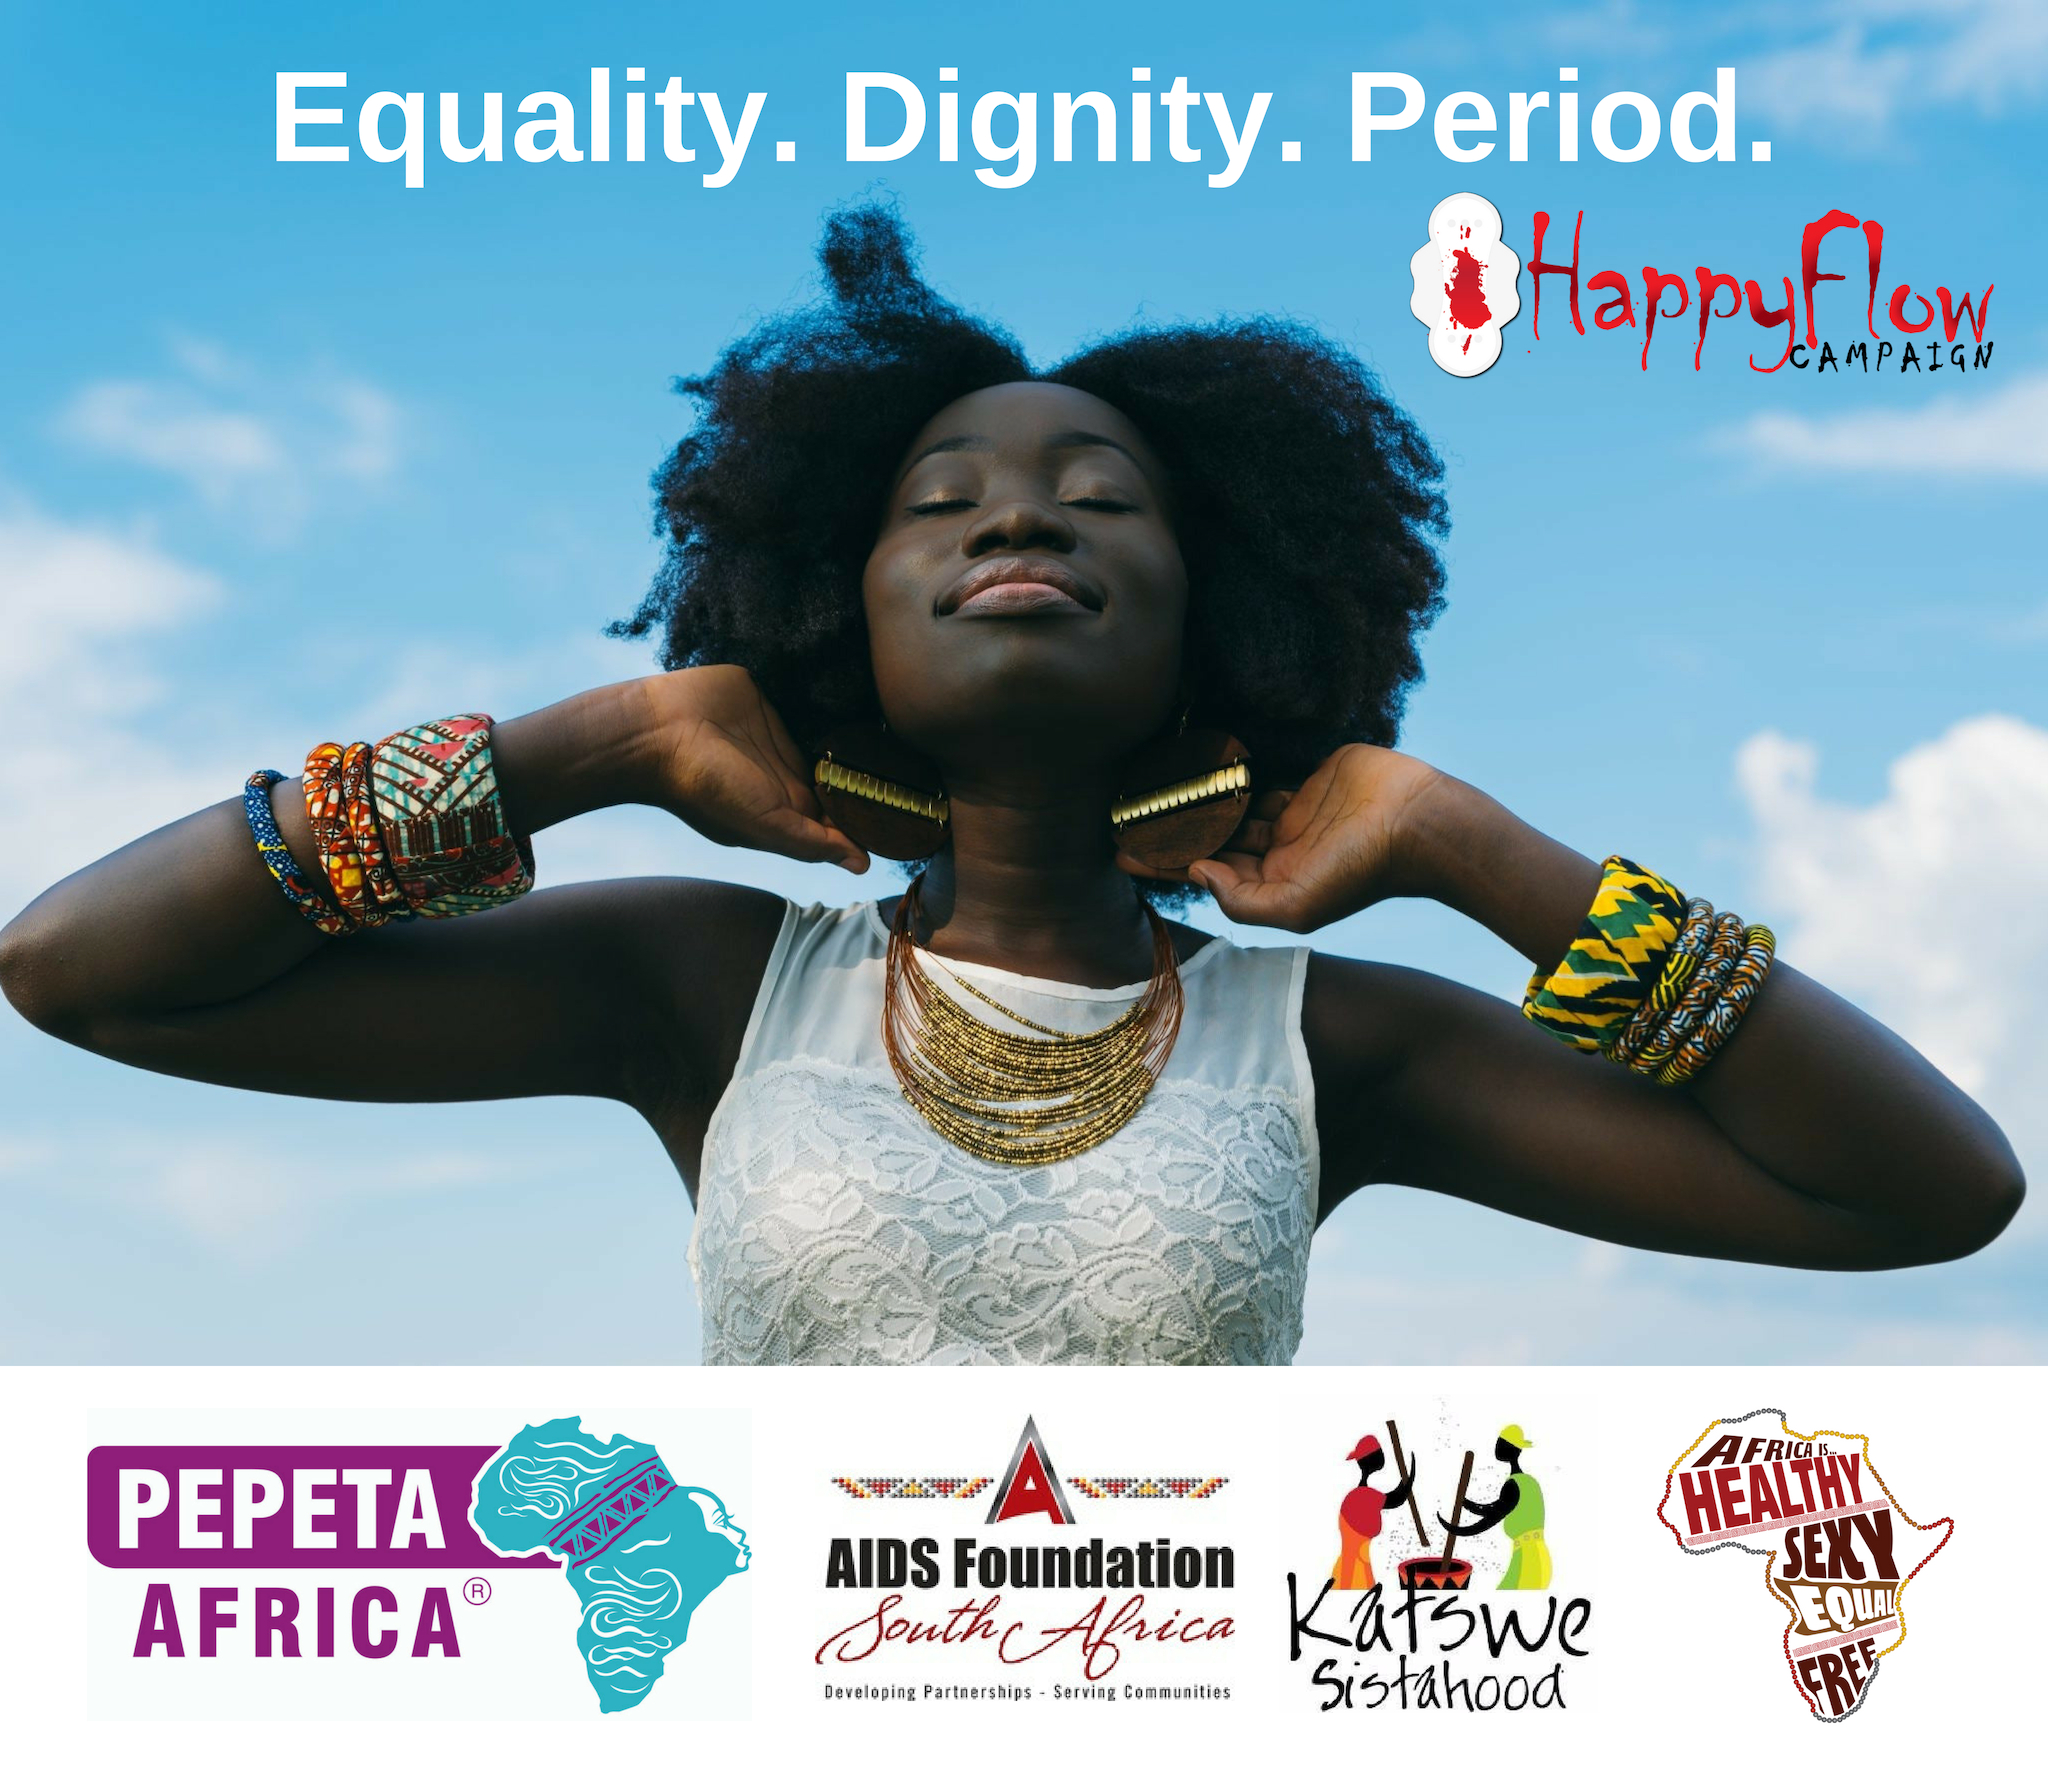 African Union Commission, East African Legislative Assembly, SADC Parliamentary Forum: WE DEMAND FREE SANITARY WEAR - ACT NOW!